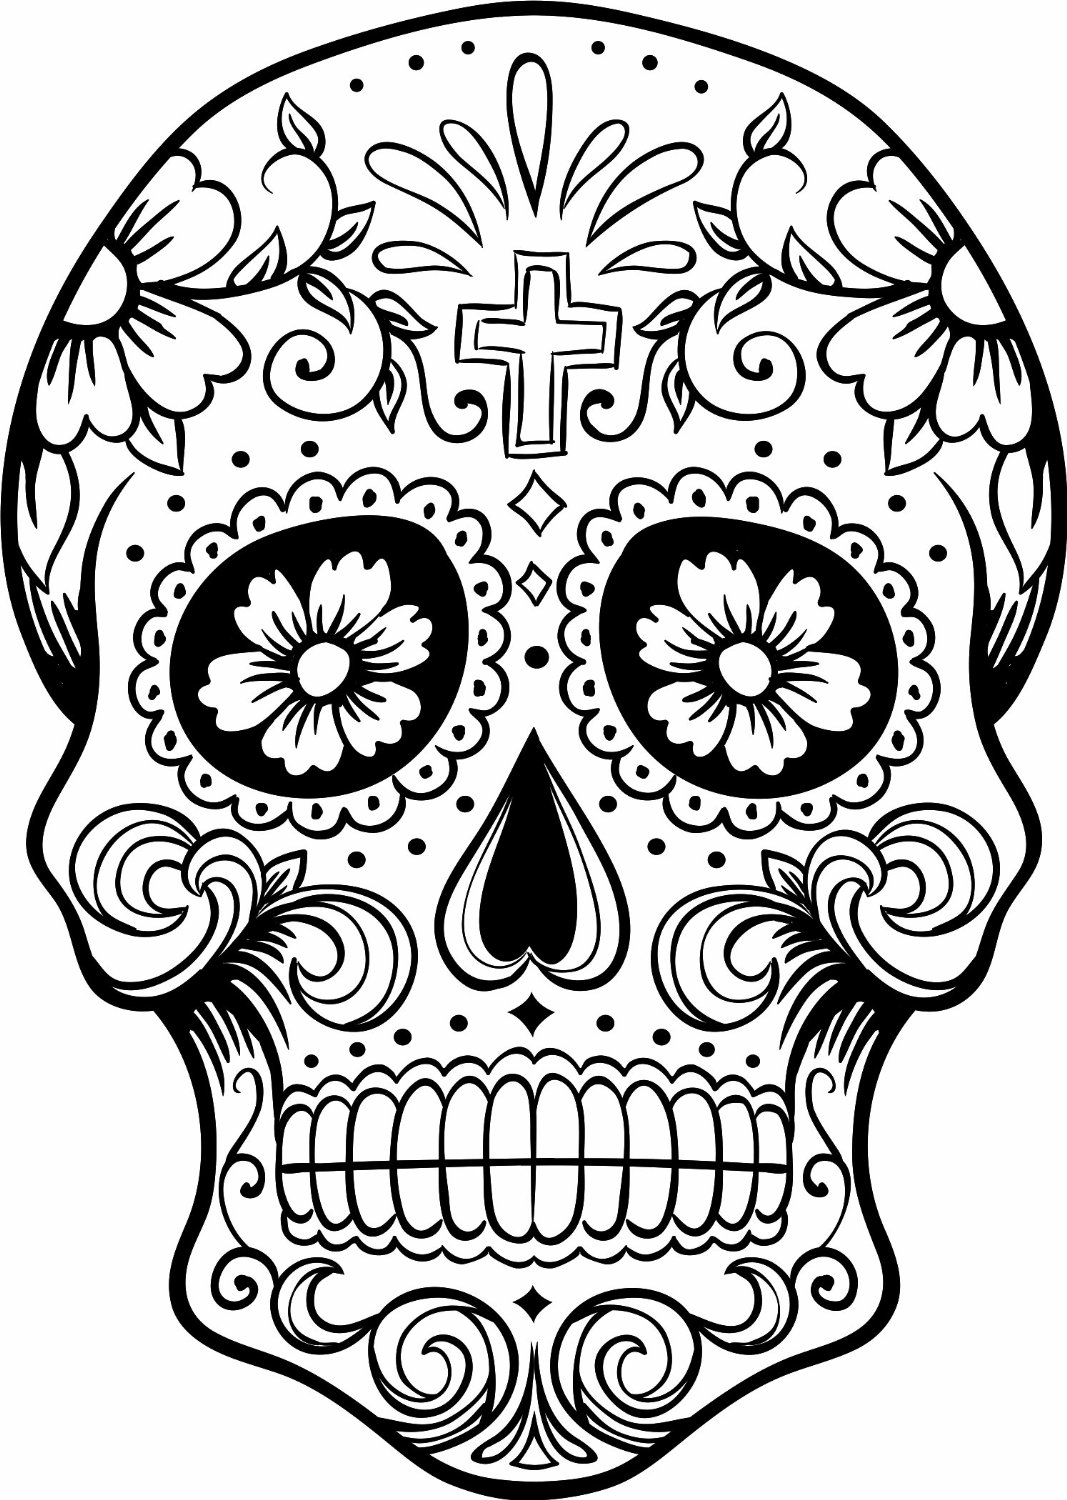 day of the dead skull coloring page day of the dead history and free sugar skulls coloring pages coloring day of page the dead skull